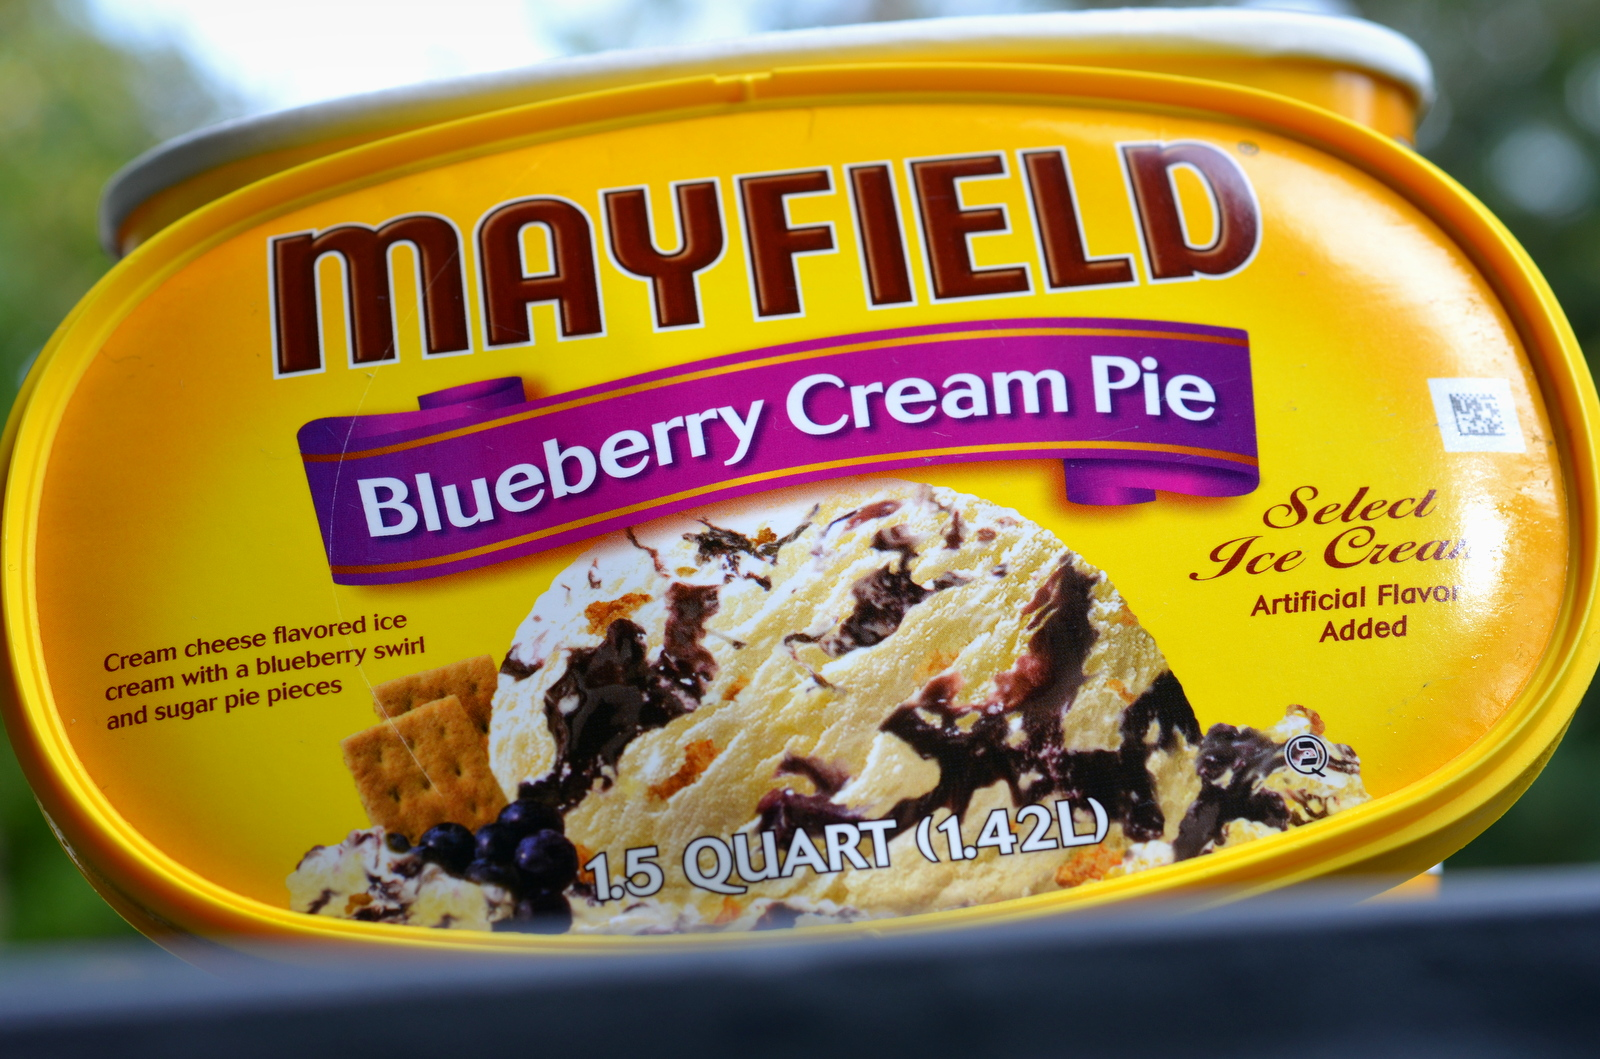 food and ice cream recipes REVIEW Mayfield Blueberry Cream Pie